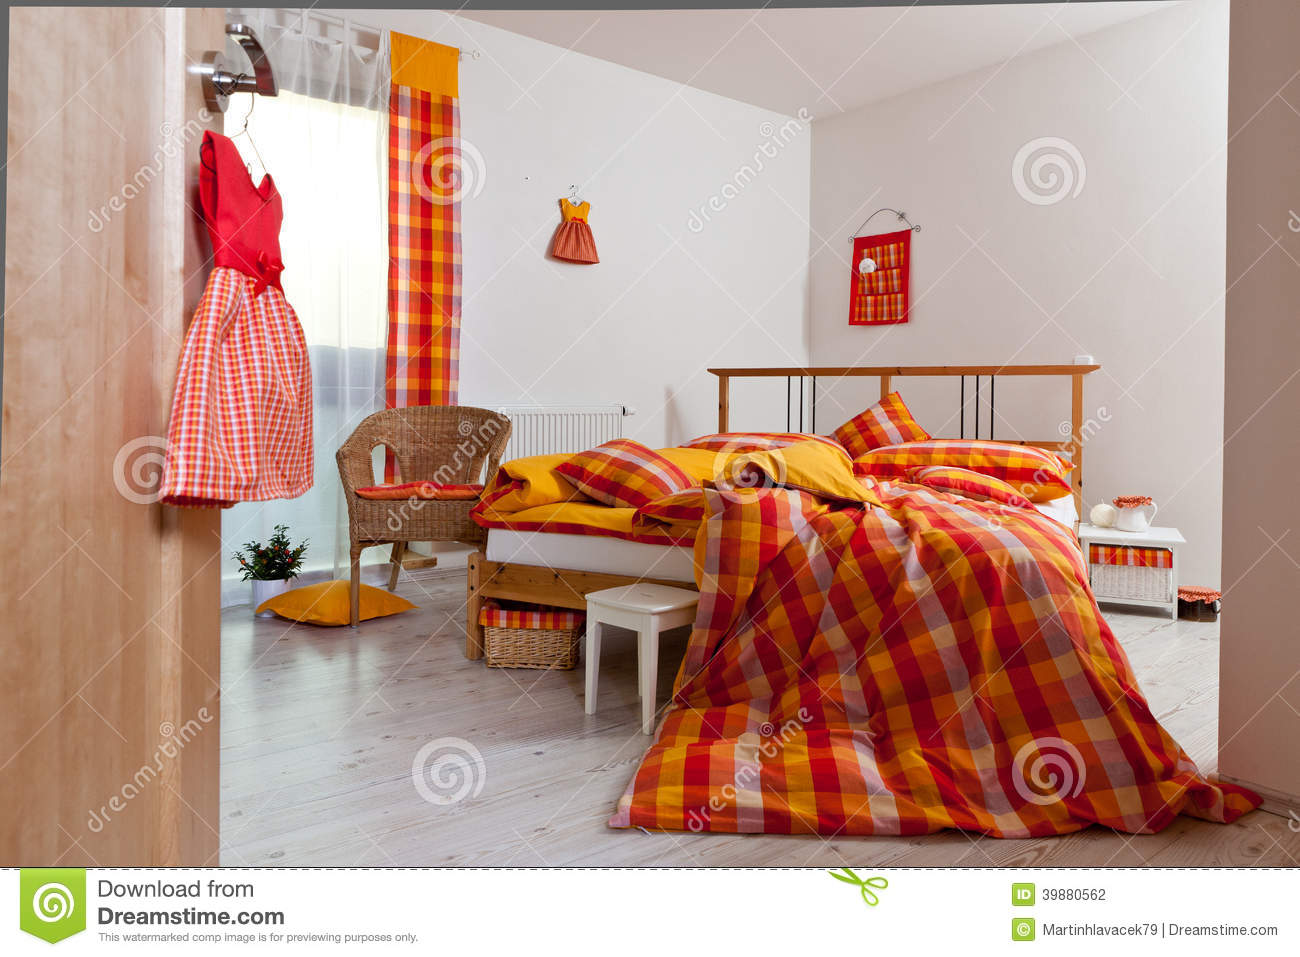 Interior Of Bedroom Bedding In Orange Yellow Red And